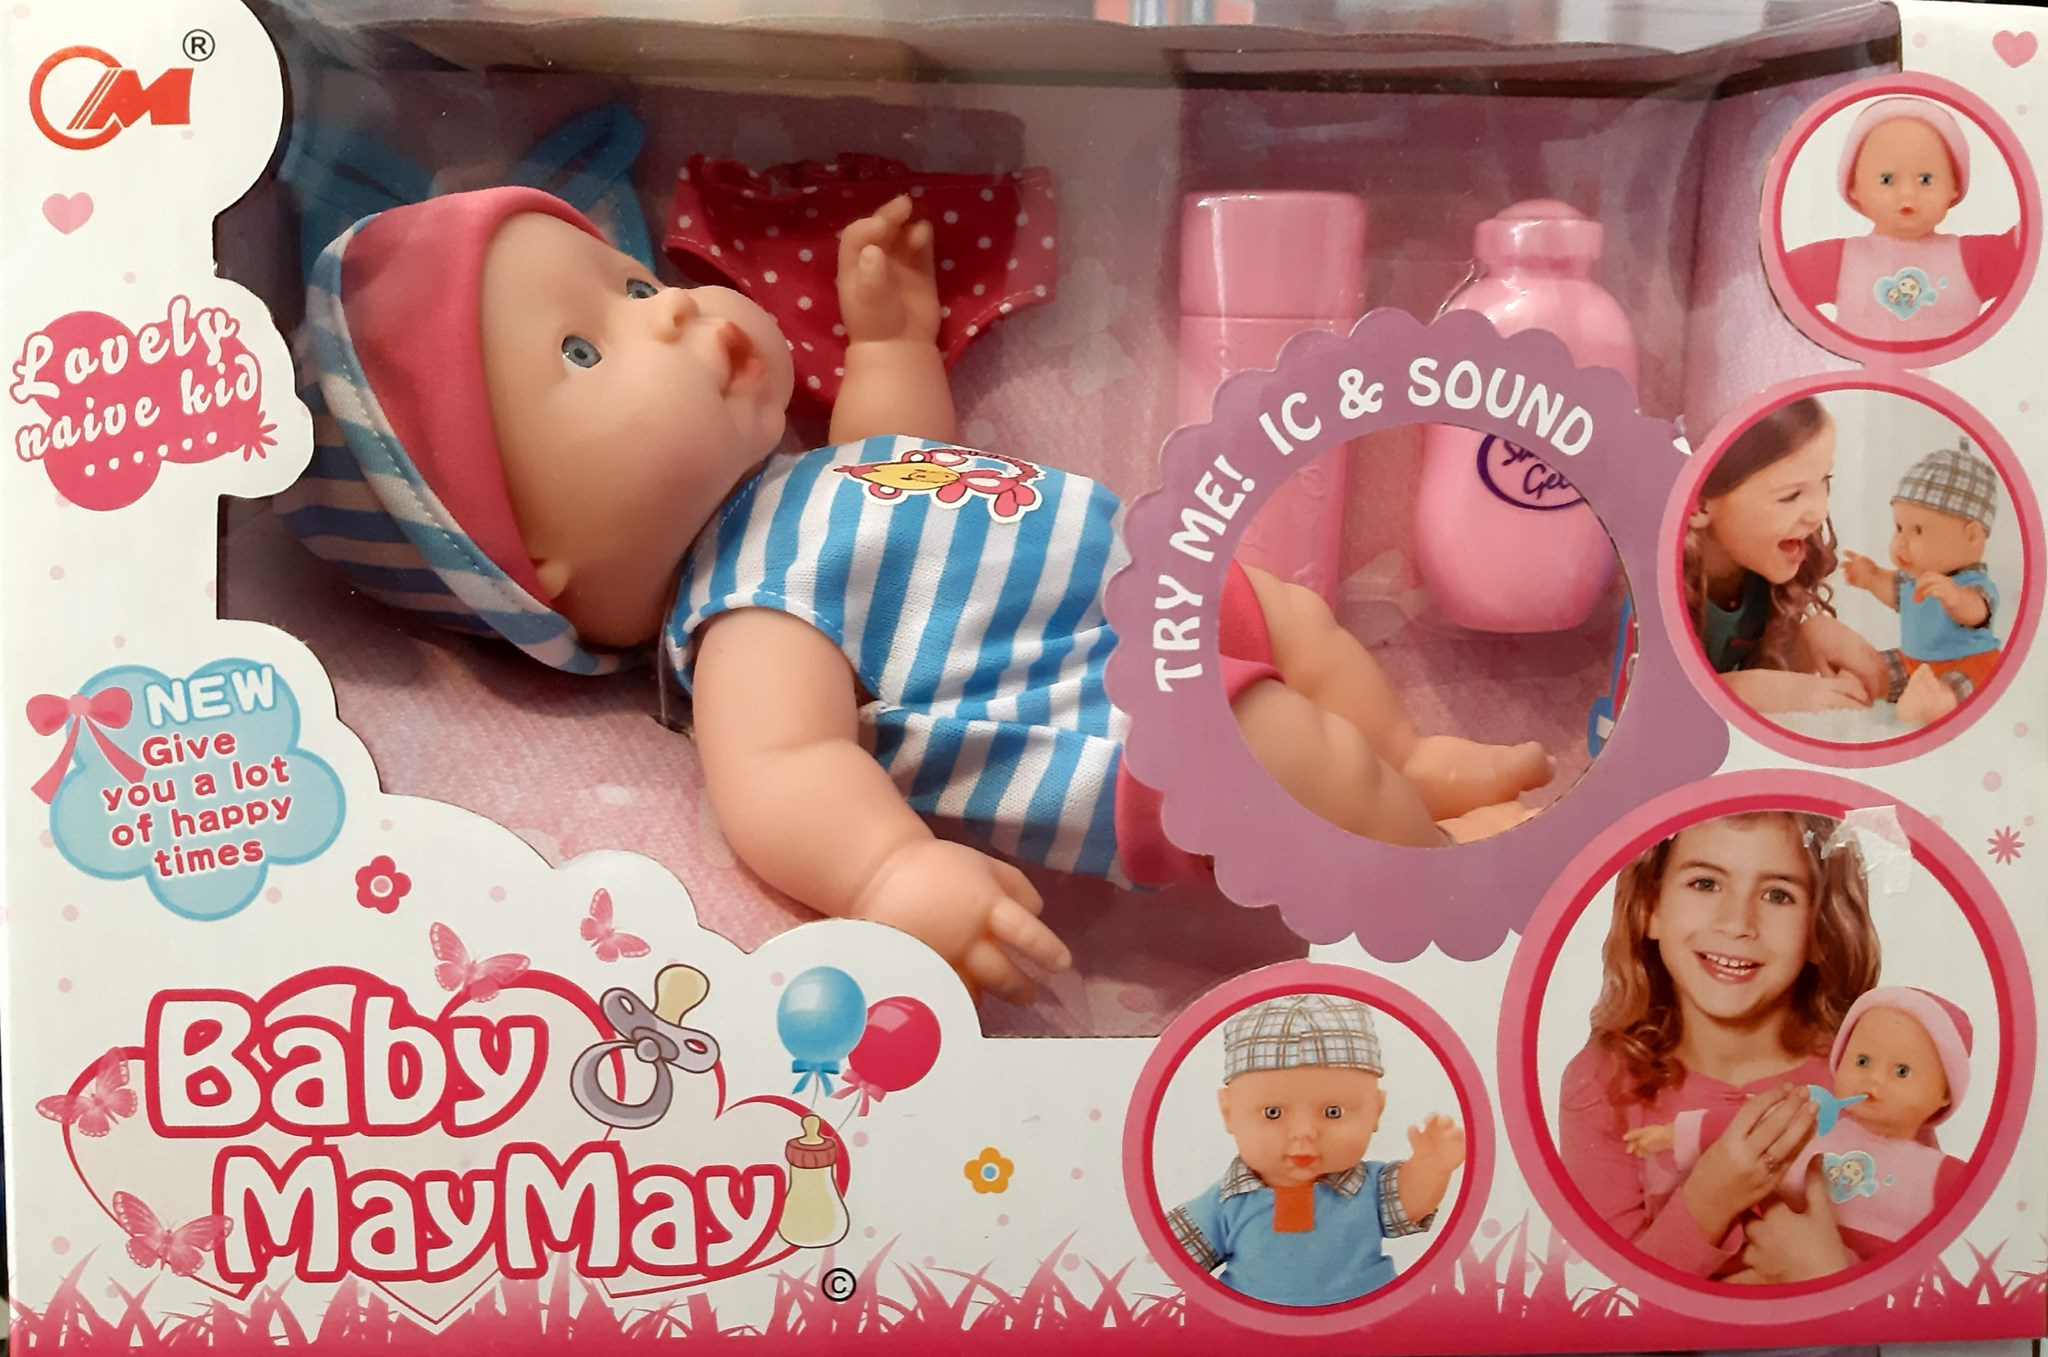 BABY MAY MAY TRY ME IC & SOUND 392504